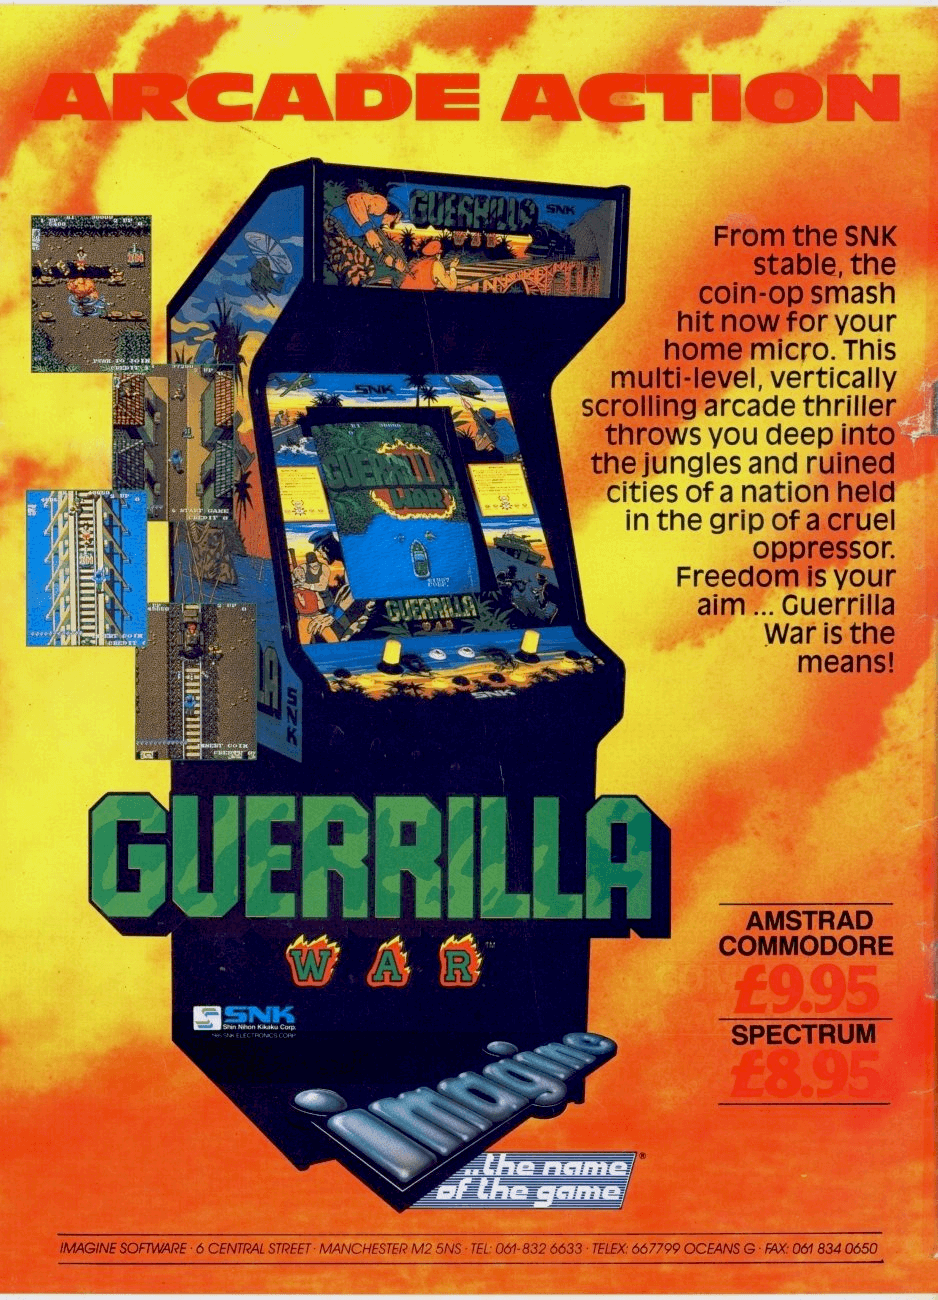 Image For Post | **Description**    Guerrilla War, released in Japan as Guevara (ゲバラ), is an overhead run and gun game produced by SNK. Originally released for arcades in 1987 as a coin-operated arcade game, Guerrilla War followed the adventures of two unnamed rebel commandos (Che Guevara and Fidel Castro in the Japanese version) as they raid an unnamed Caribbean Island in order to free it from the rule of an unnamed tyrannical dictator.   **Releases**    *Arcade* The arcade version, released by SNK in 1987, followed the format of Ikari Warriors (1986). Using eight-way rotary joysticks, the game allowed players to move their character in one direction while rotating the joystick in order to shoot in another.  *Home ports* The game was moderately successful, and spawned ports onto home video game systems. Data East released home editions on the PC, Commodore 64 and Apple II, while Imagine Software published the Amstrad CPC and ZX Spectrum ports in Europe.   *NES* SNK published itself a version for the NES/Famicom 8-bit console. Because of the limits of the home platforms, the home versions did not have the rotating joysticks.  The NES version's two-player simultaneous play, unlimited continues, and frantic action gave it an edge over its arcade predecessor. It received a perfect 5-star rating in the book Ultimate Nintendo: Guide to the NES Library 1985–1995.[1] and is also available on PlayStation Network.  *SNK 40th Anniversary Collection* Both the arcade and home console versions were included on the SNK 40th Anniversary Collection for the Nintendo Switch and PlayStation 4.  **Cancelled ports**   Amiga and Atari ST conversions were under development for Ocean, but the developers didn't complete them.  **Version differences**   The original Japanese version of Guerrilla War is quite different storywise from the U.S. version. The characters you're playing as (according to the Japanese version) are actually Fidel Castro and Che Guevara, and the plot was the two of the